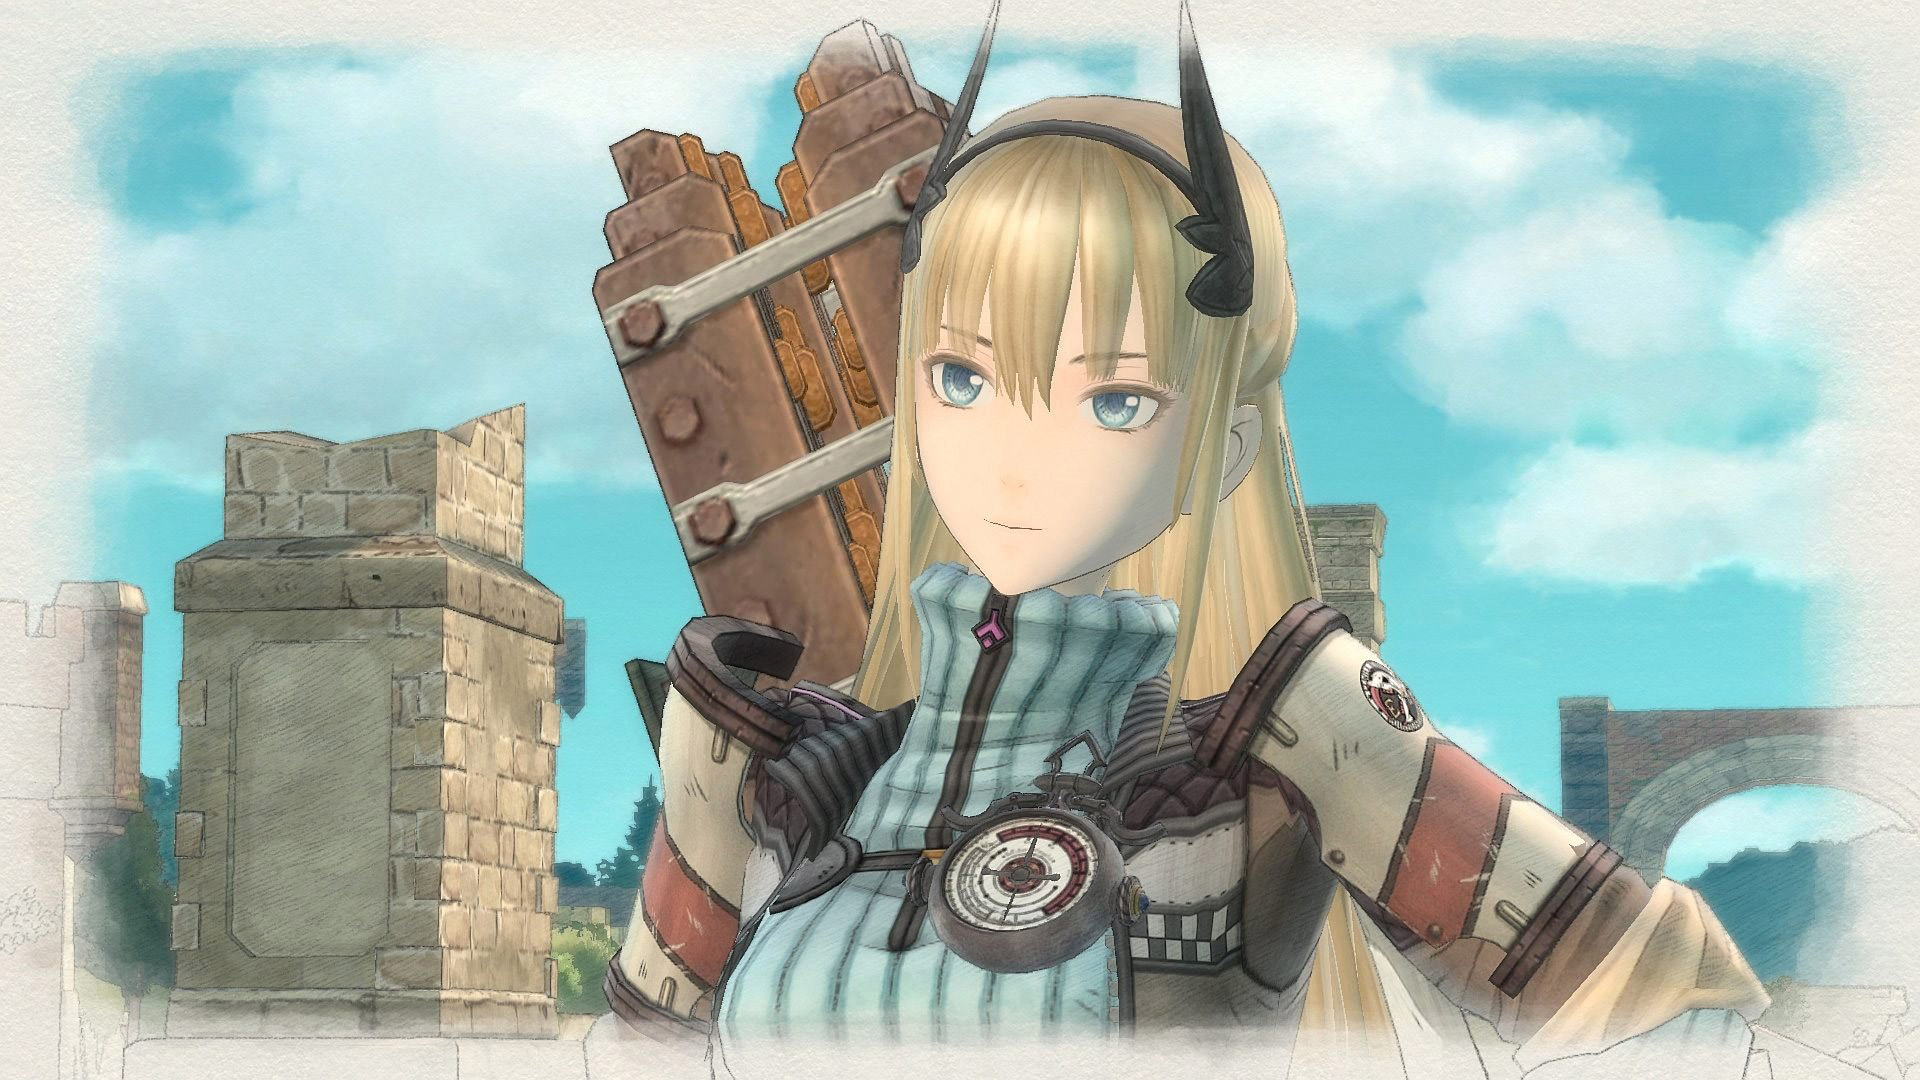 Free Valkyria Chronicles 4 Wallpaper in 1920x1080